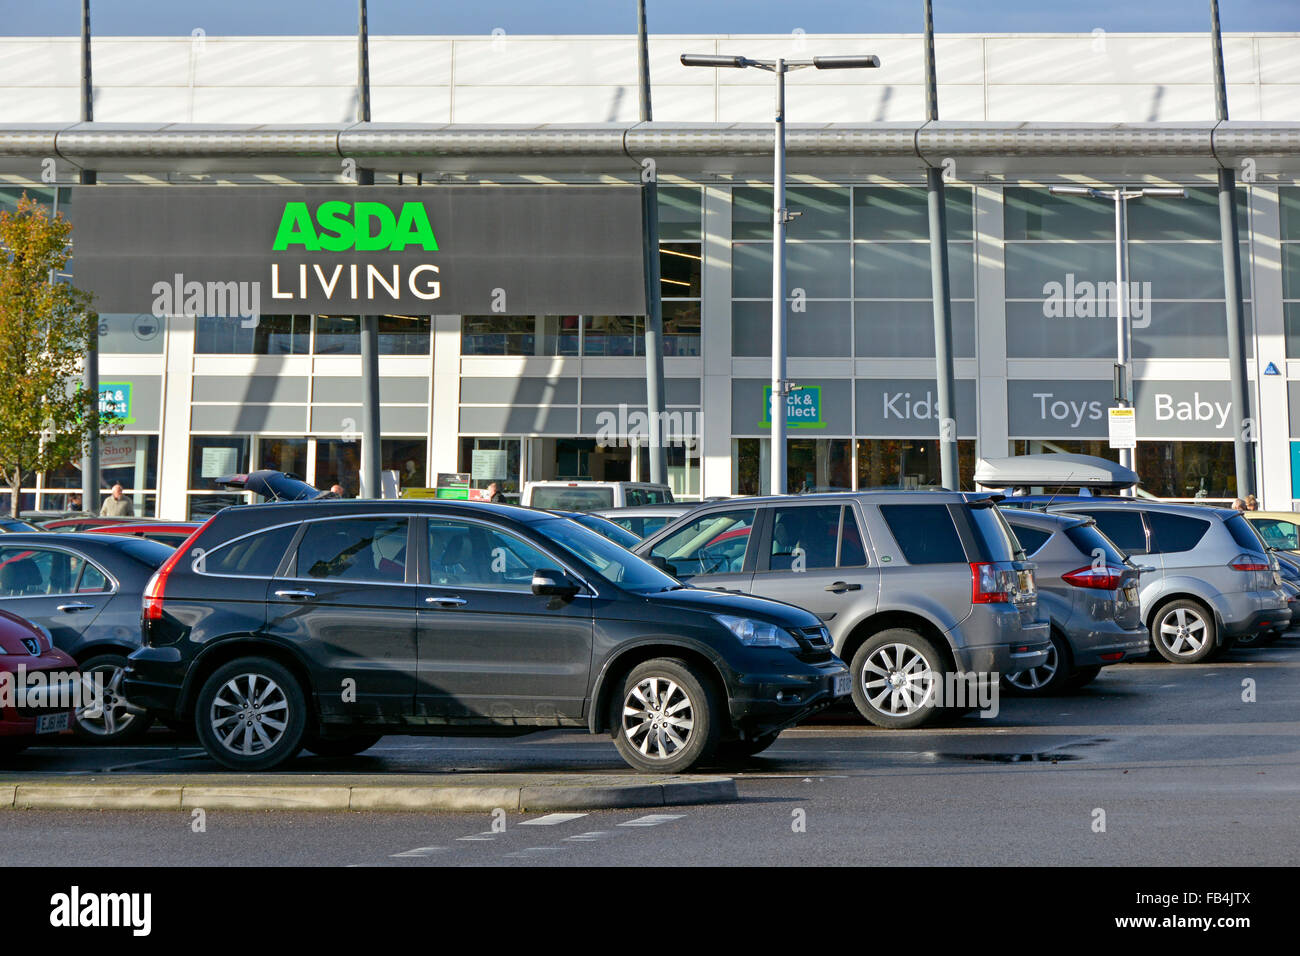 Free Car Parking Outside The Asda Living Non Grocery Products Store In A